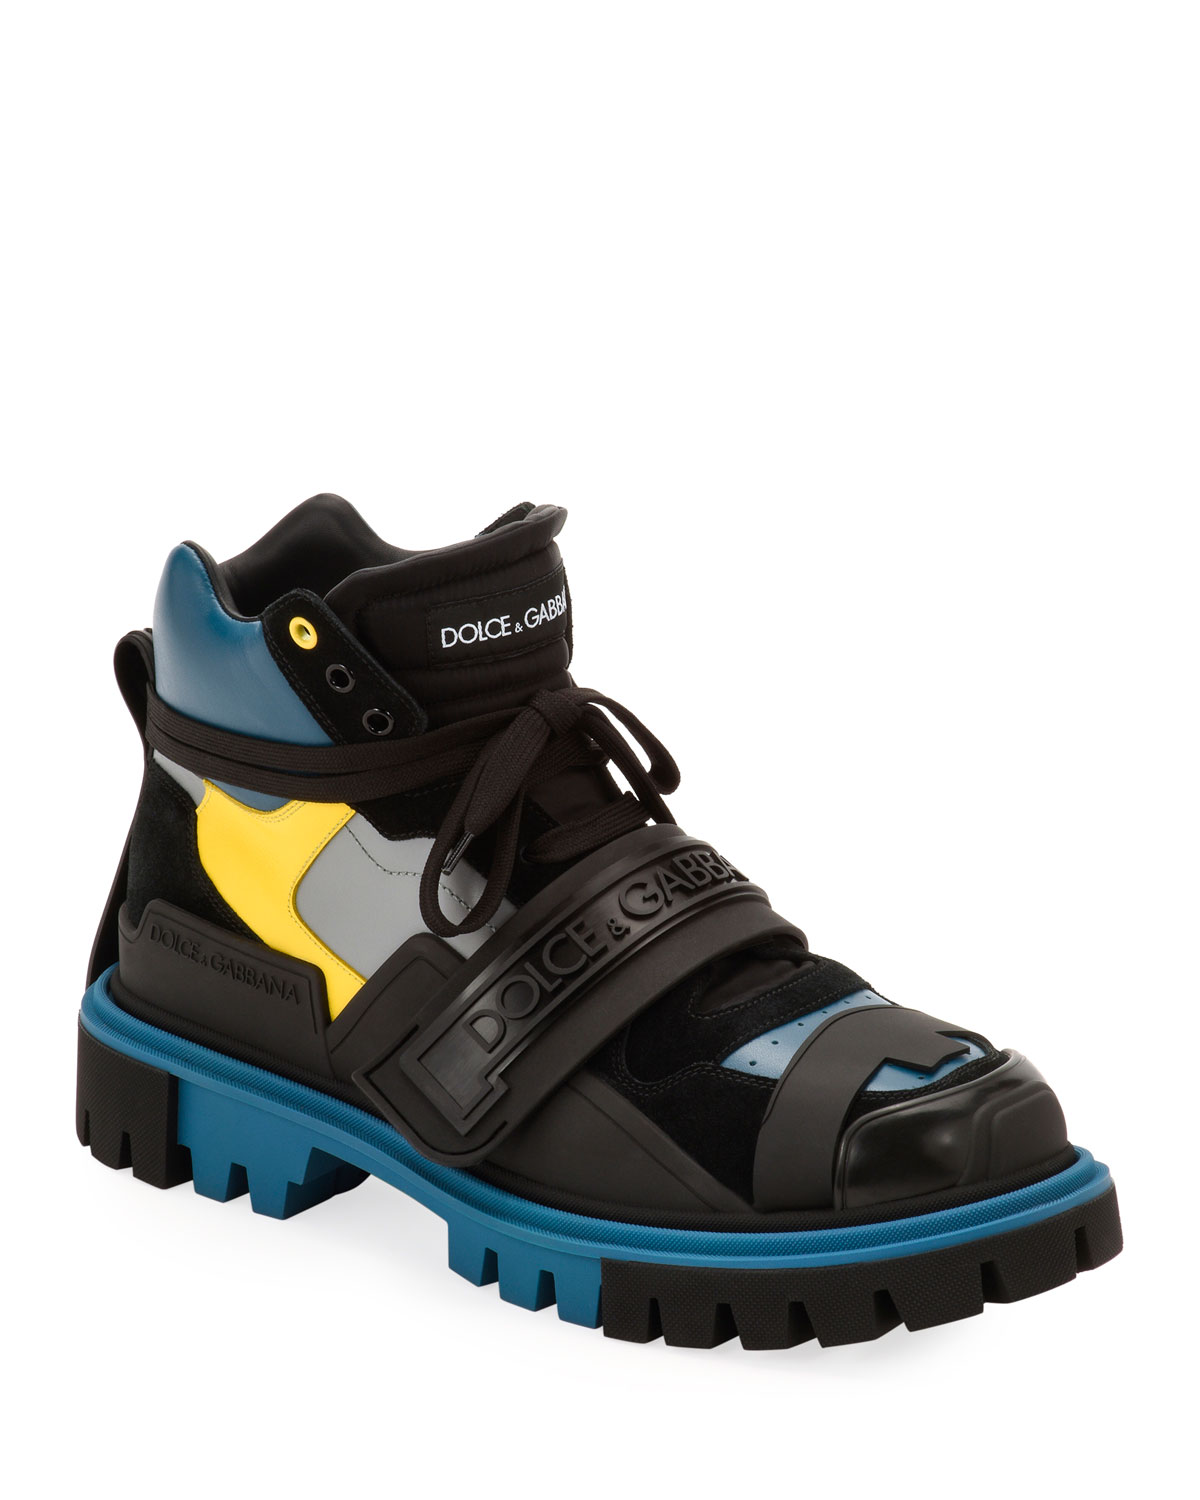 Men's Colorblock Leather Hiking Boots